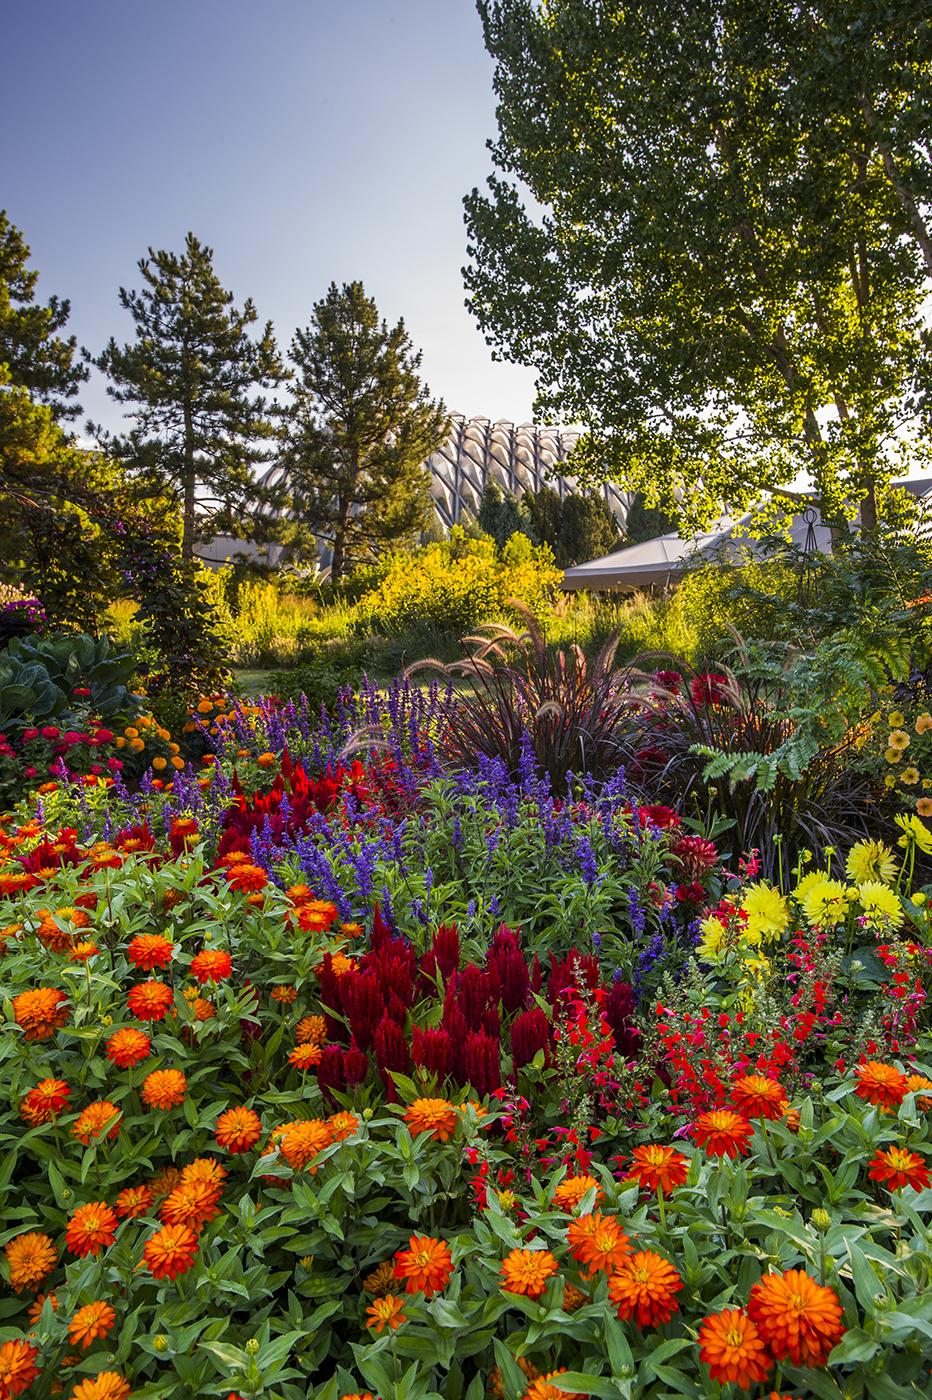 My Upcoming Photography Classes at The Denver Botanic